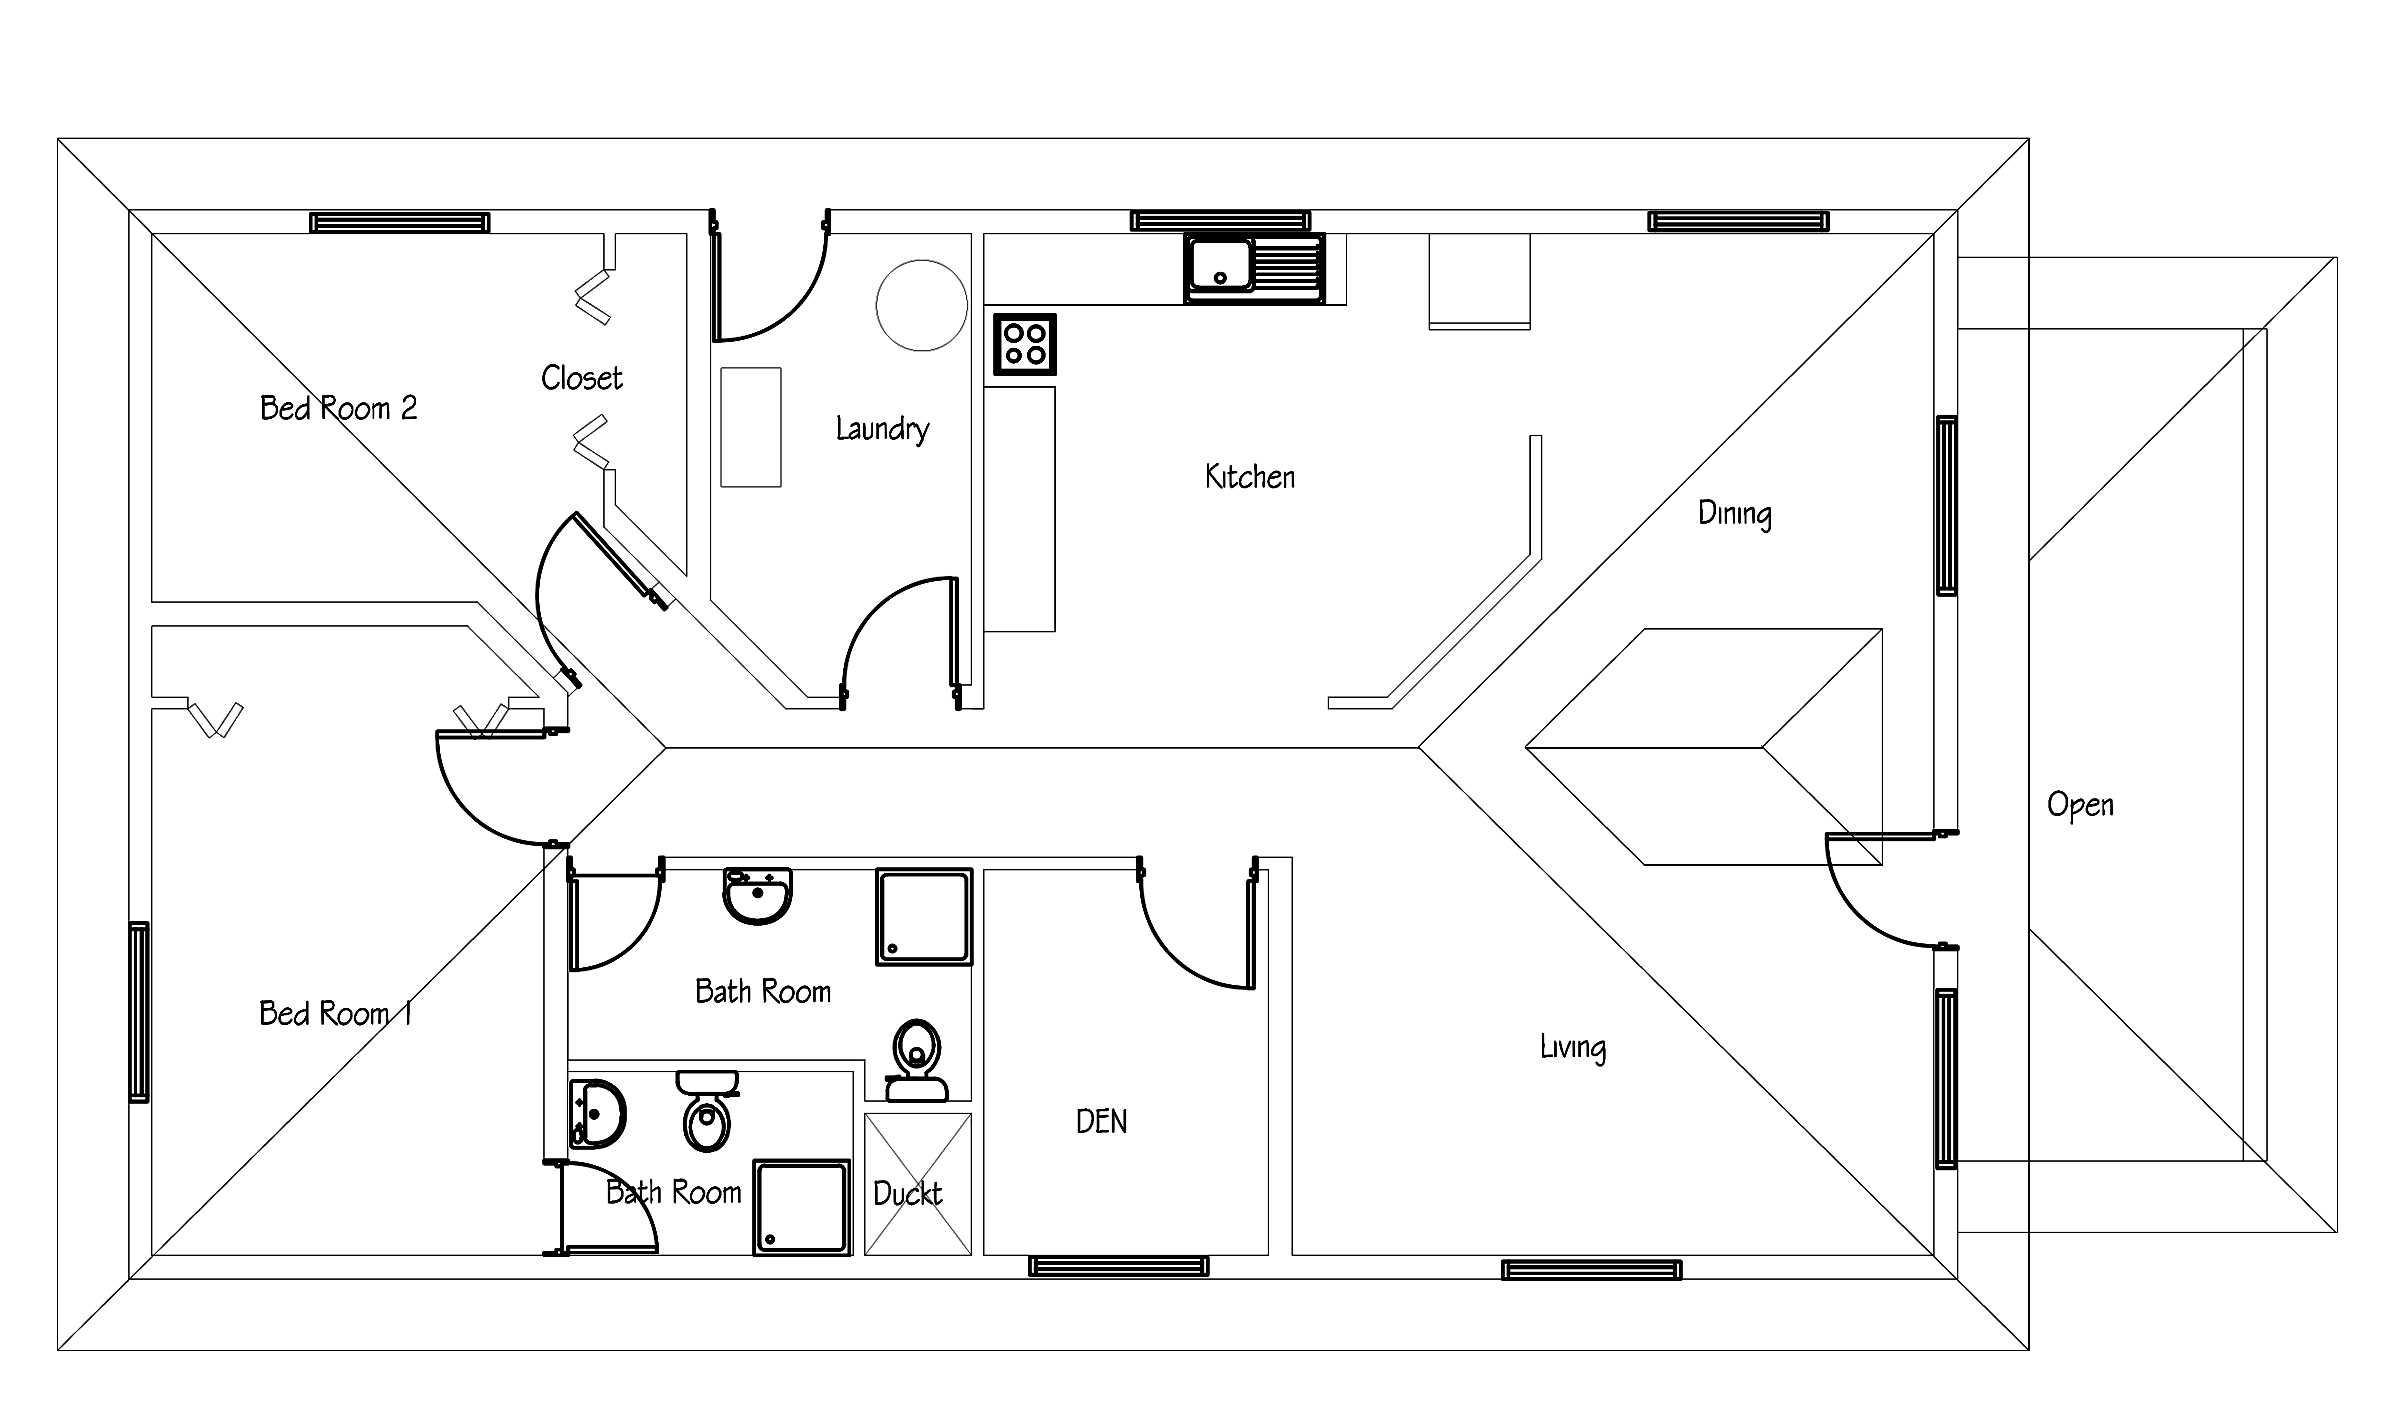 Small house plan free download with pdf and cad file for Cad house plans